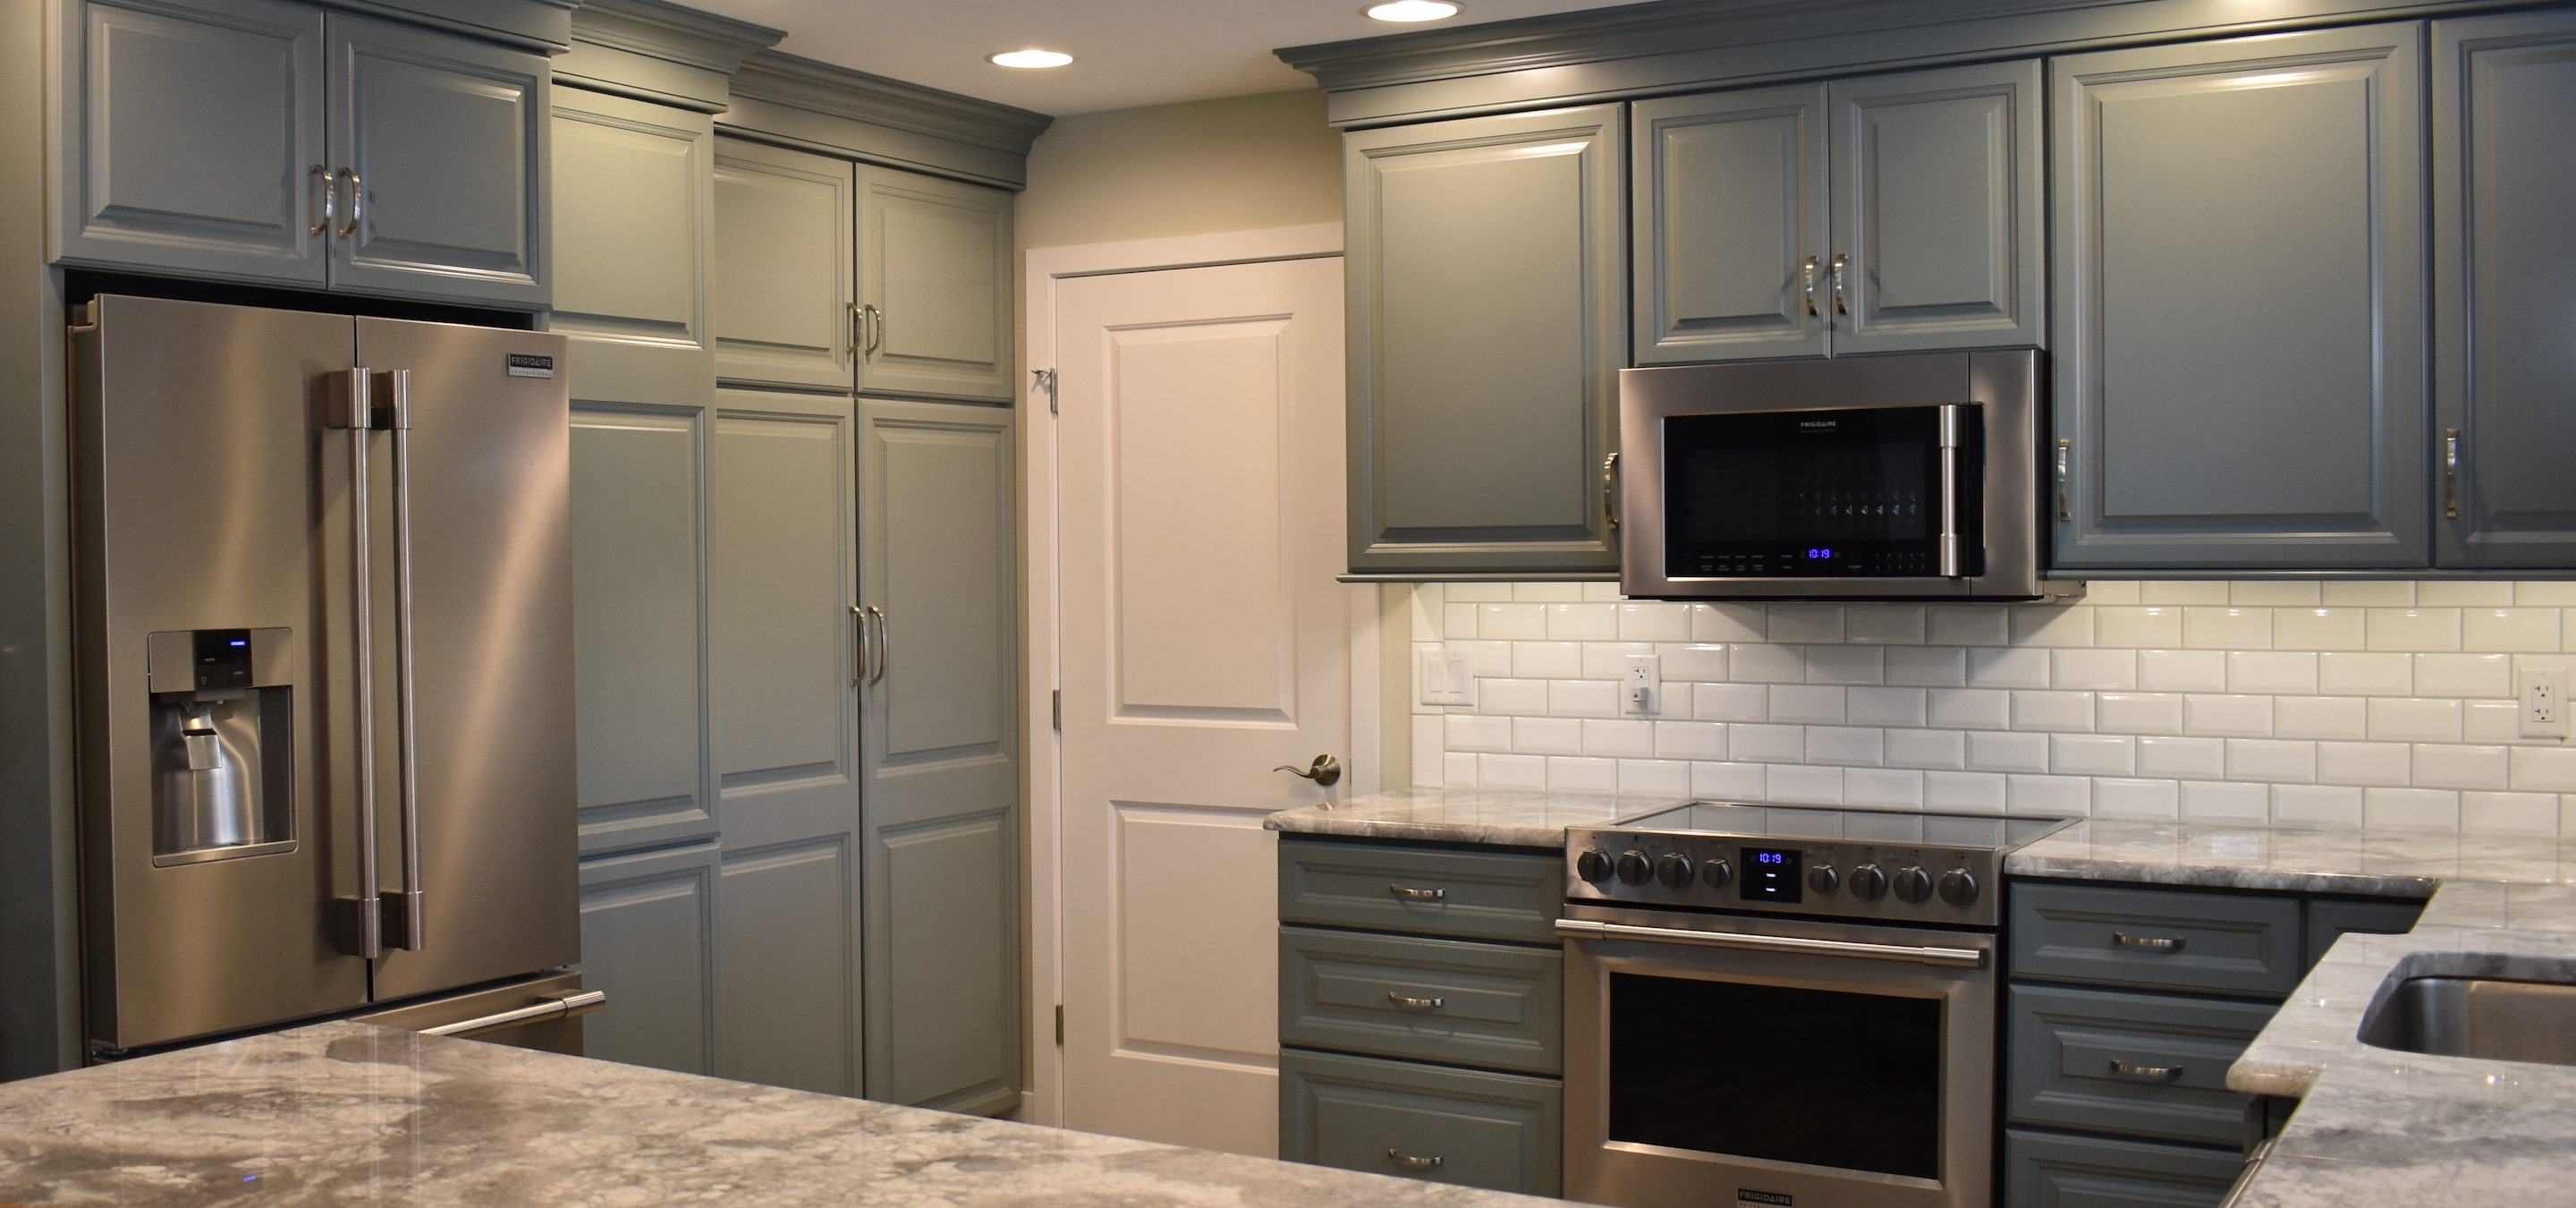 Kitchen Cabinet Renovation Rm Kitchens Inc Custom Cabinet Makers And Installers In